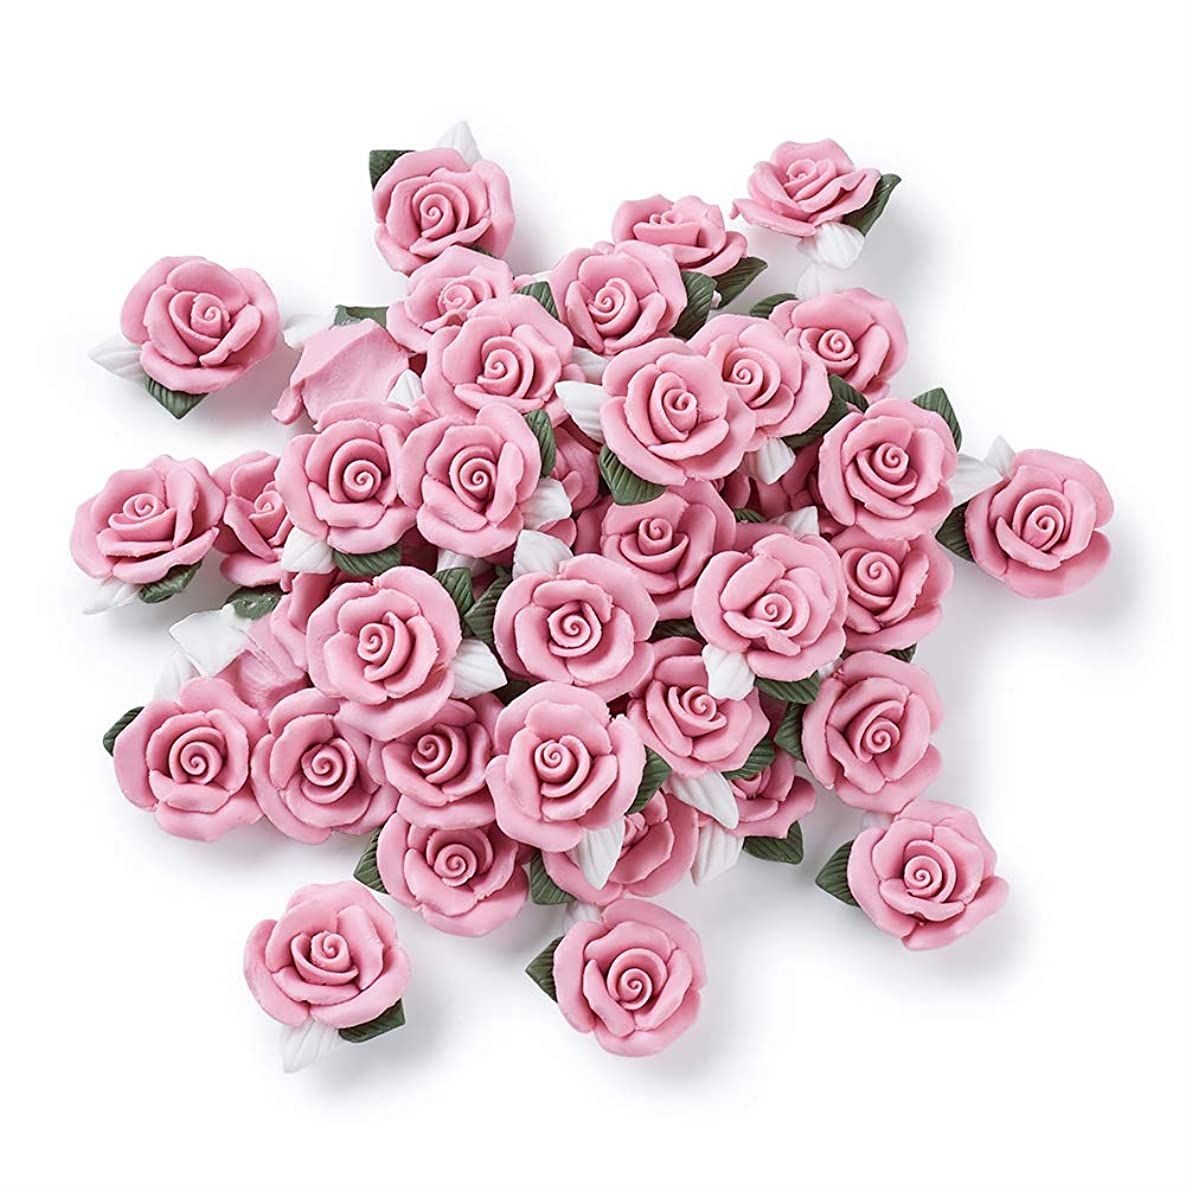 Beadthoven 50-Piece Flat BackPink Rose Handmade Porcelain Cabochons Flower Charms China Clay Beads Charms Jewelry Embellishment Supplies for Gluing DIY Jewelry Making Finding Supplies Stud Earring